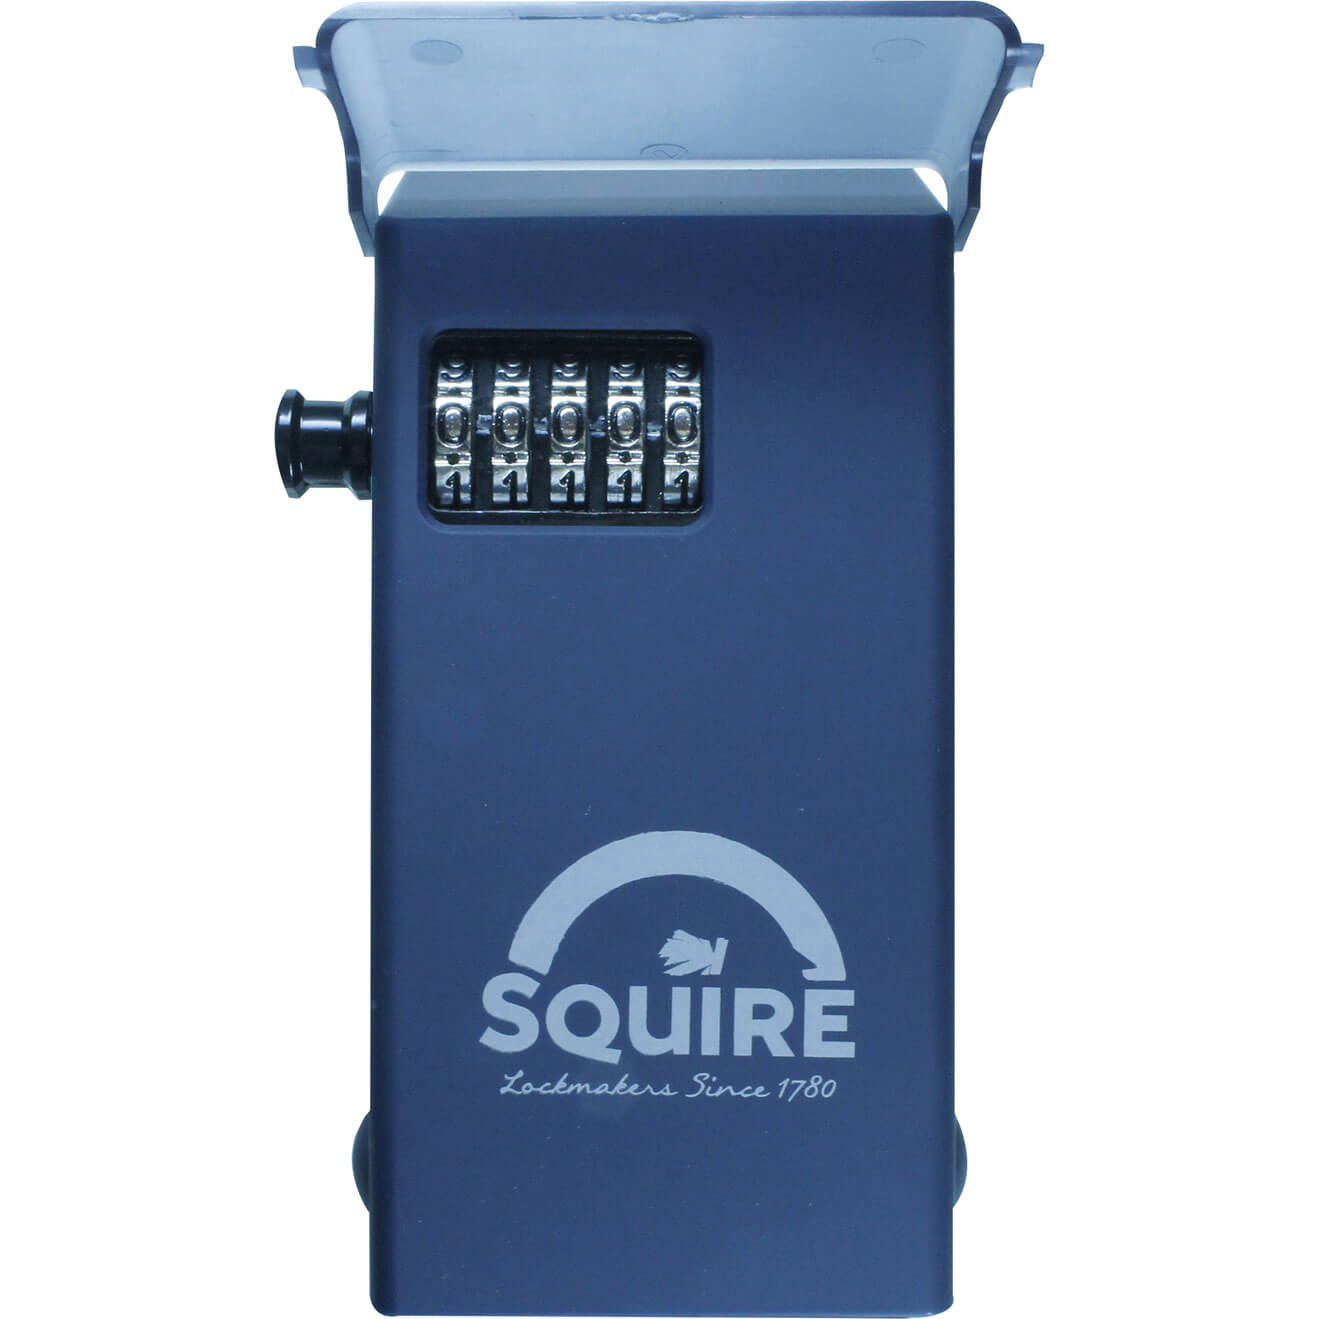 Image of Henry Squire Stronghold Sold Secure Keysafe